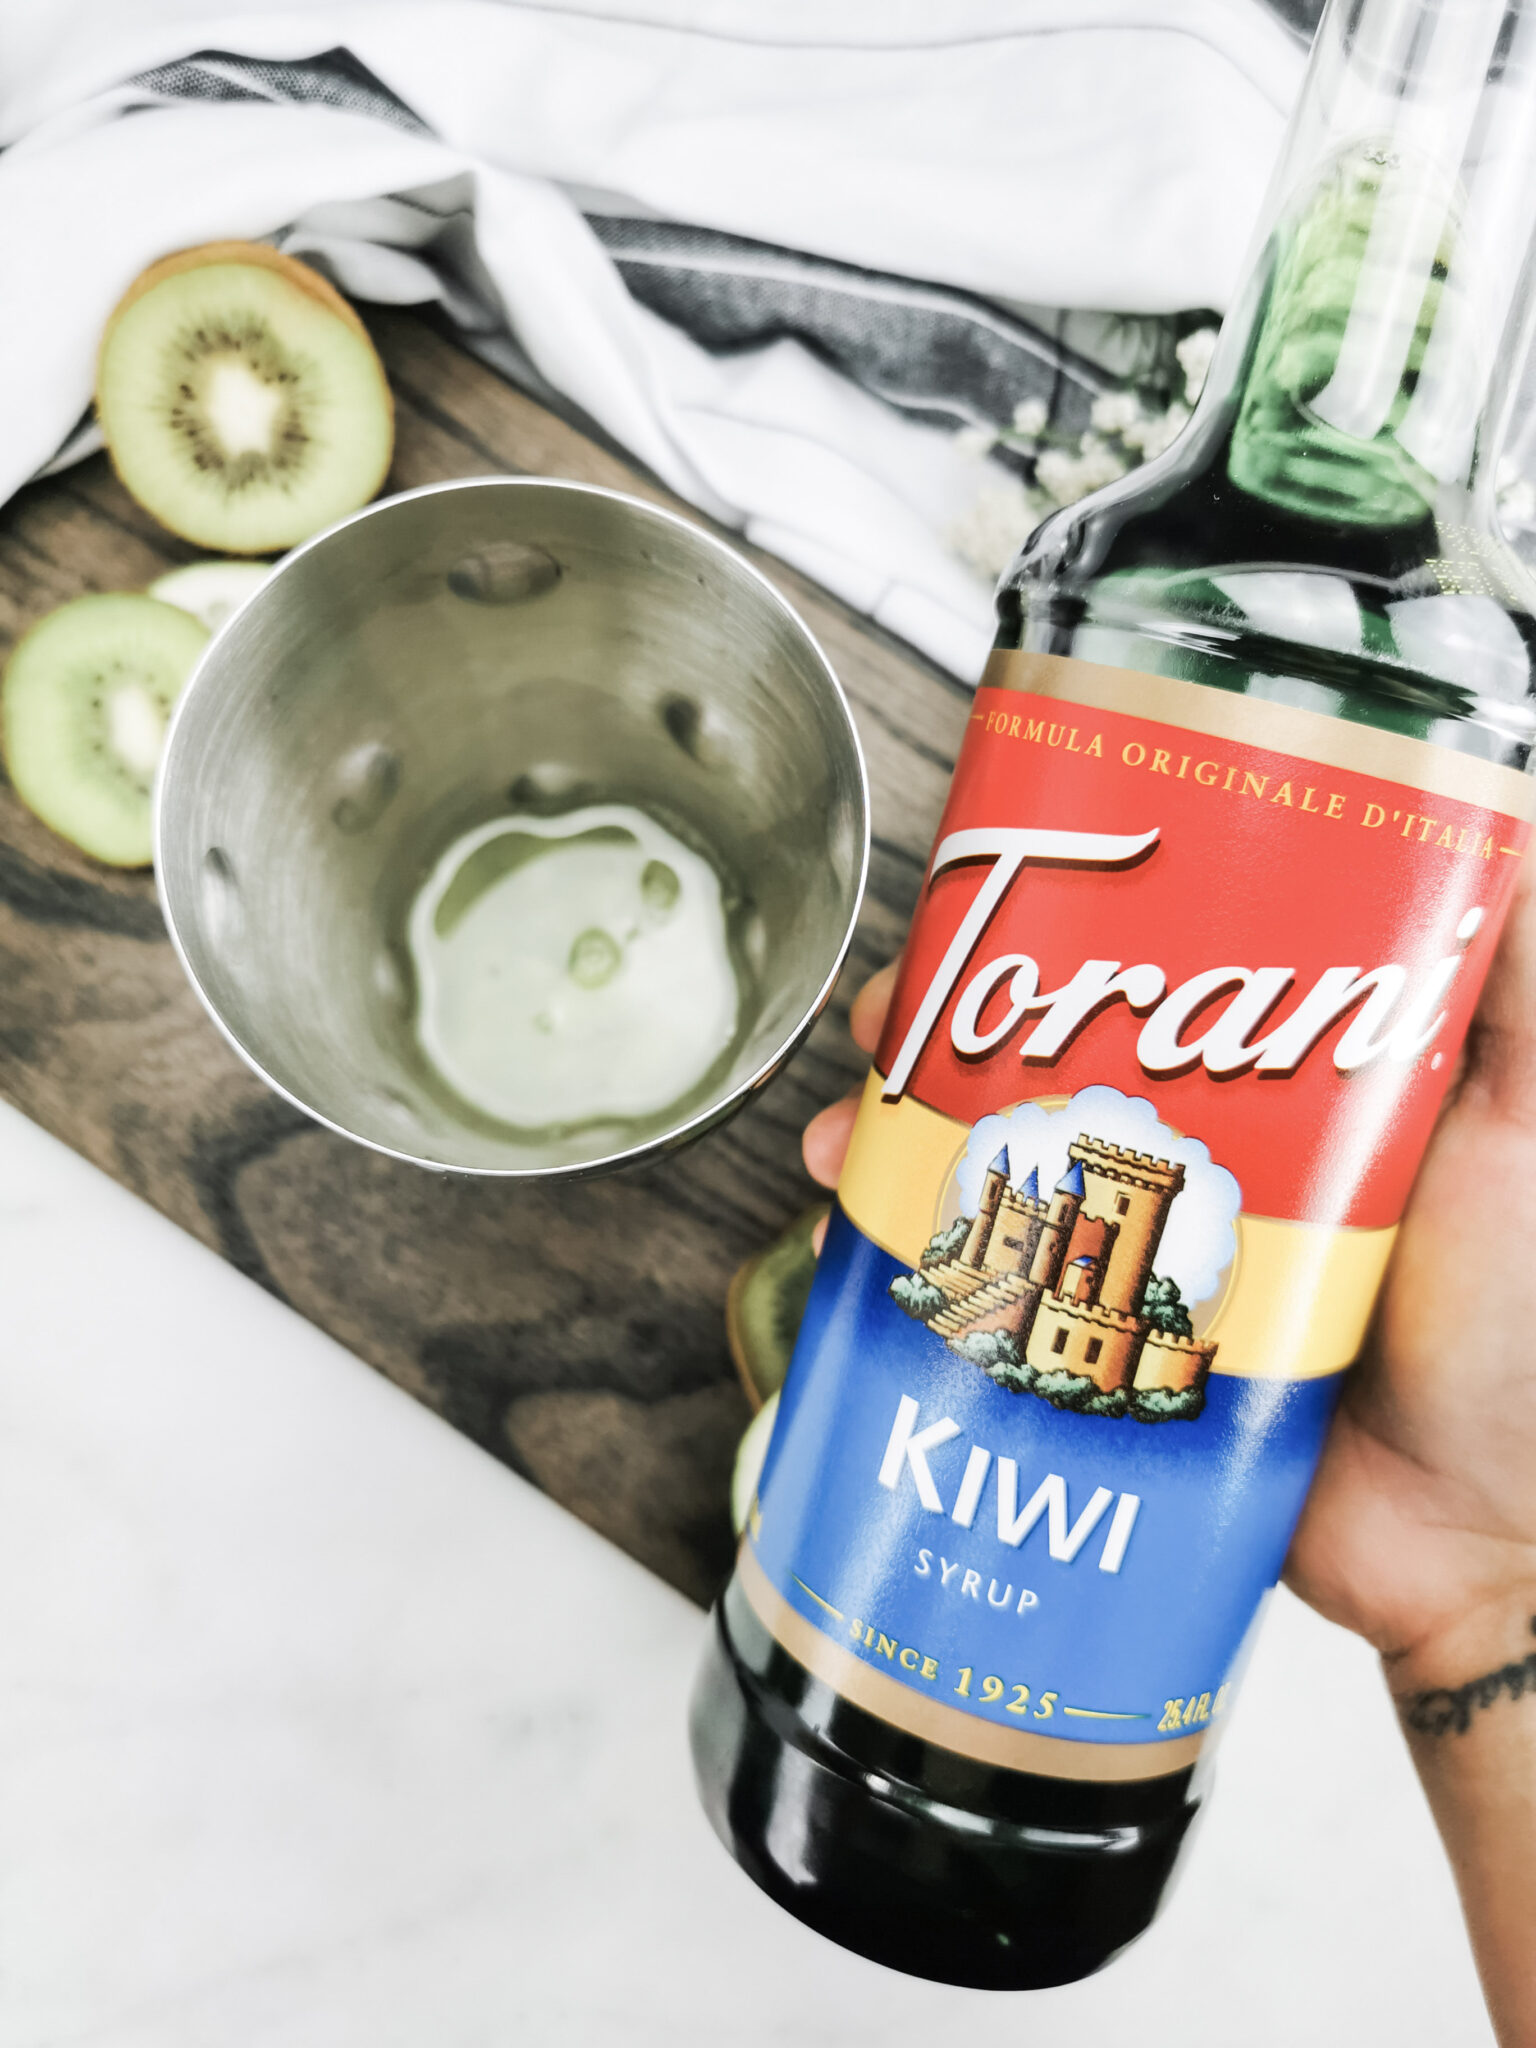 Holding the Torani Kiwi syrup before pouring it into the cocktail shaker.